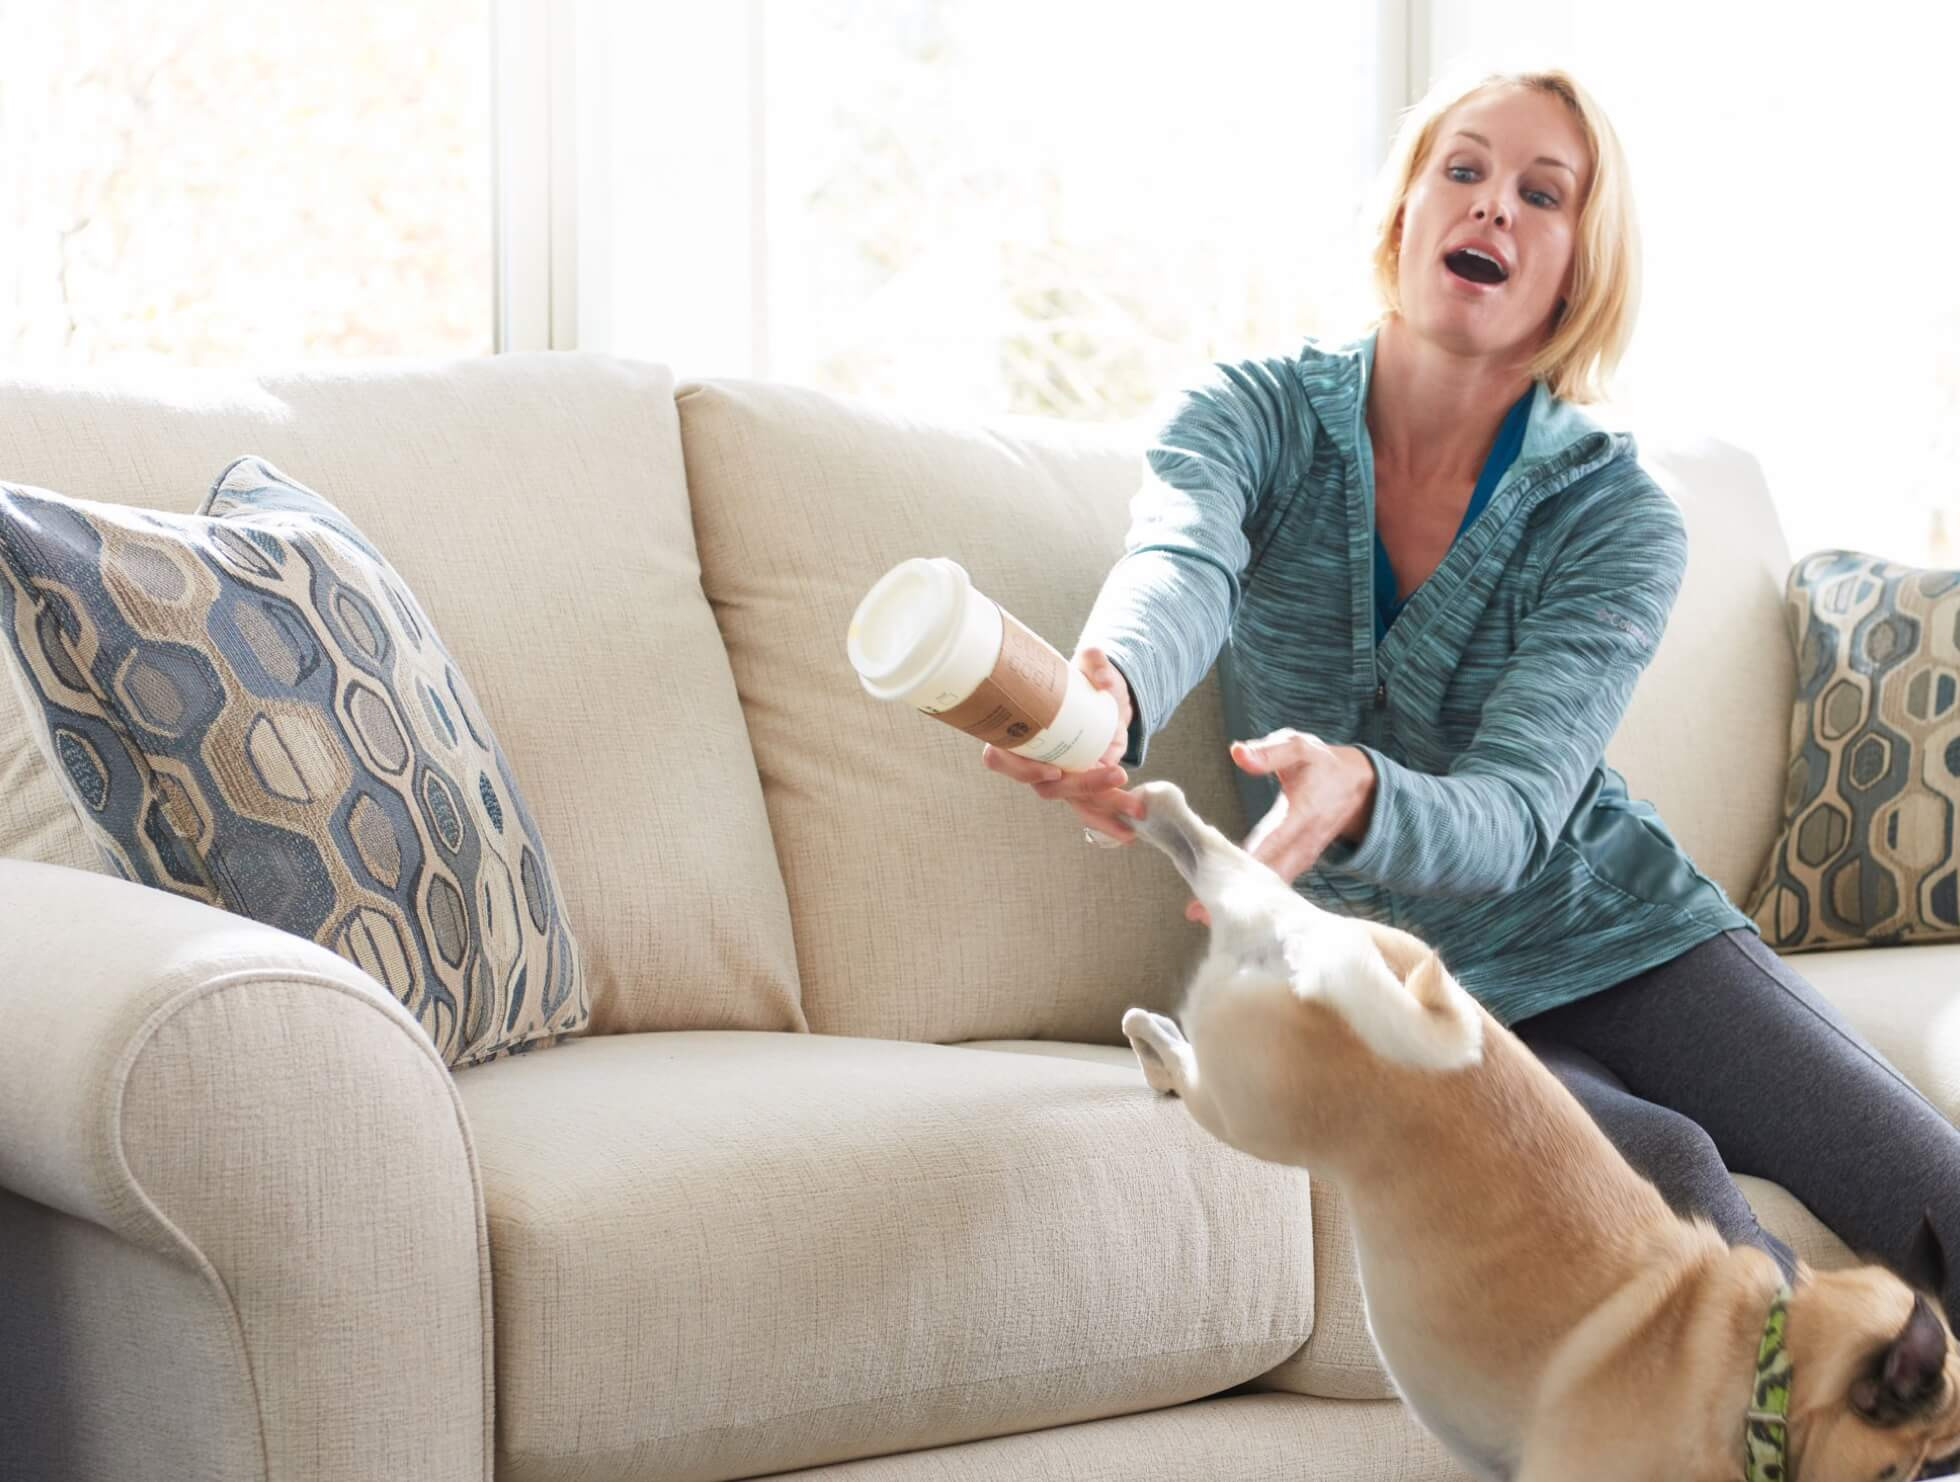 Lady dropping coffee on sofa